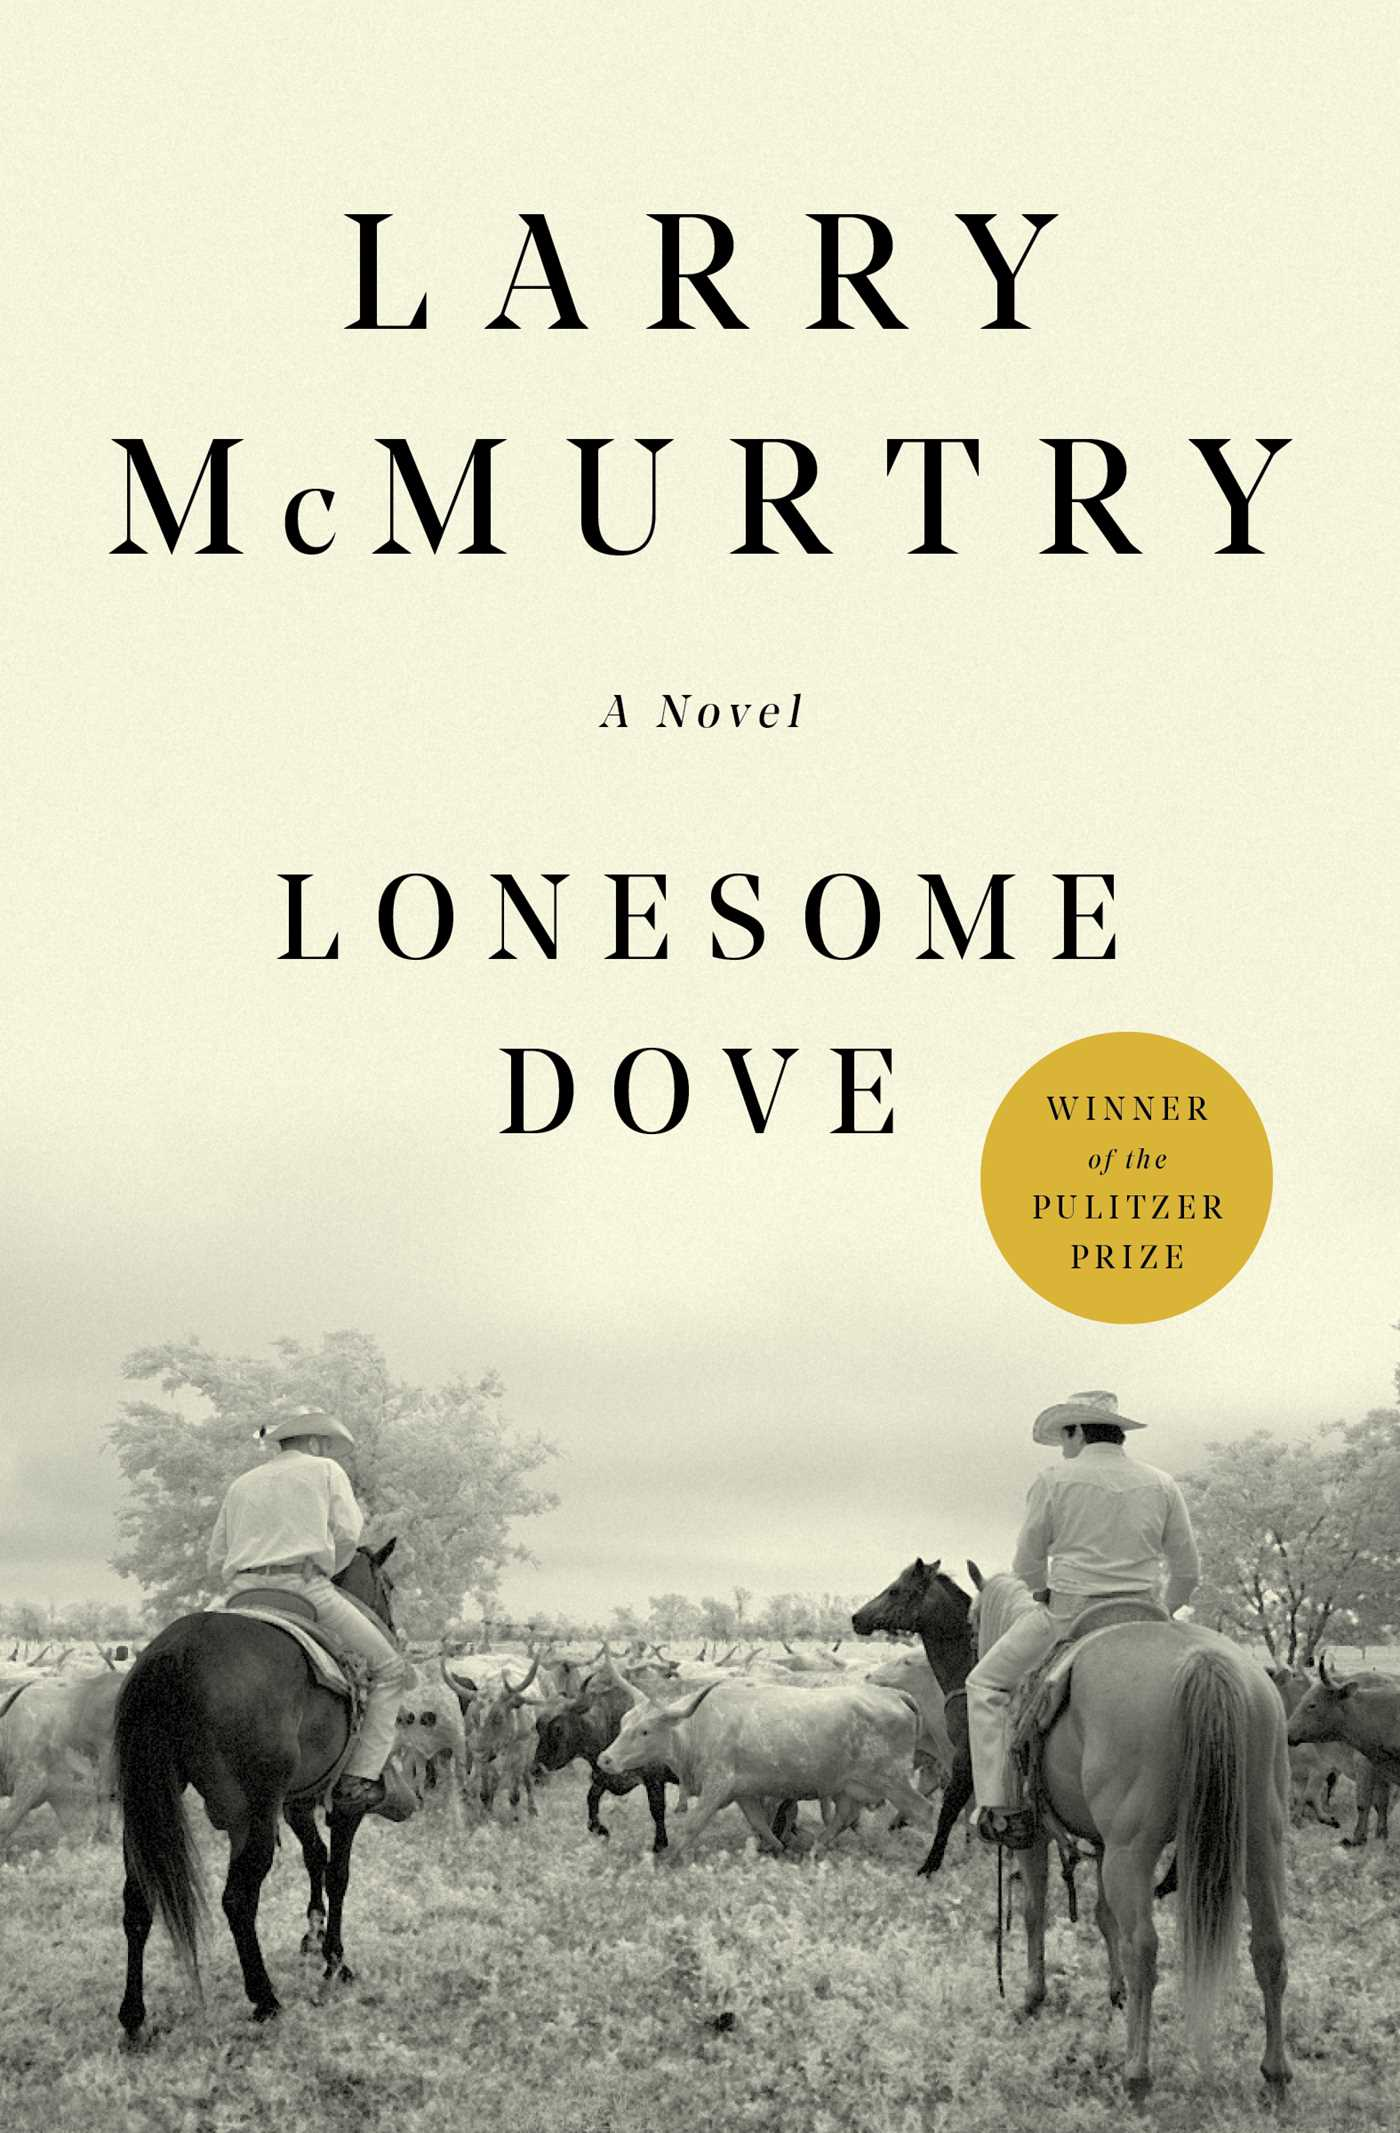 Lonesome dove 9781451606539 hr